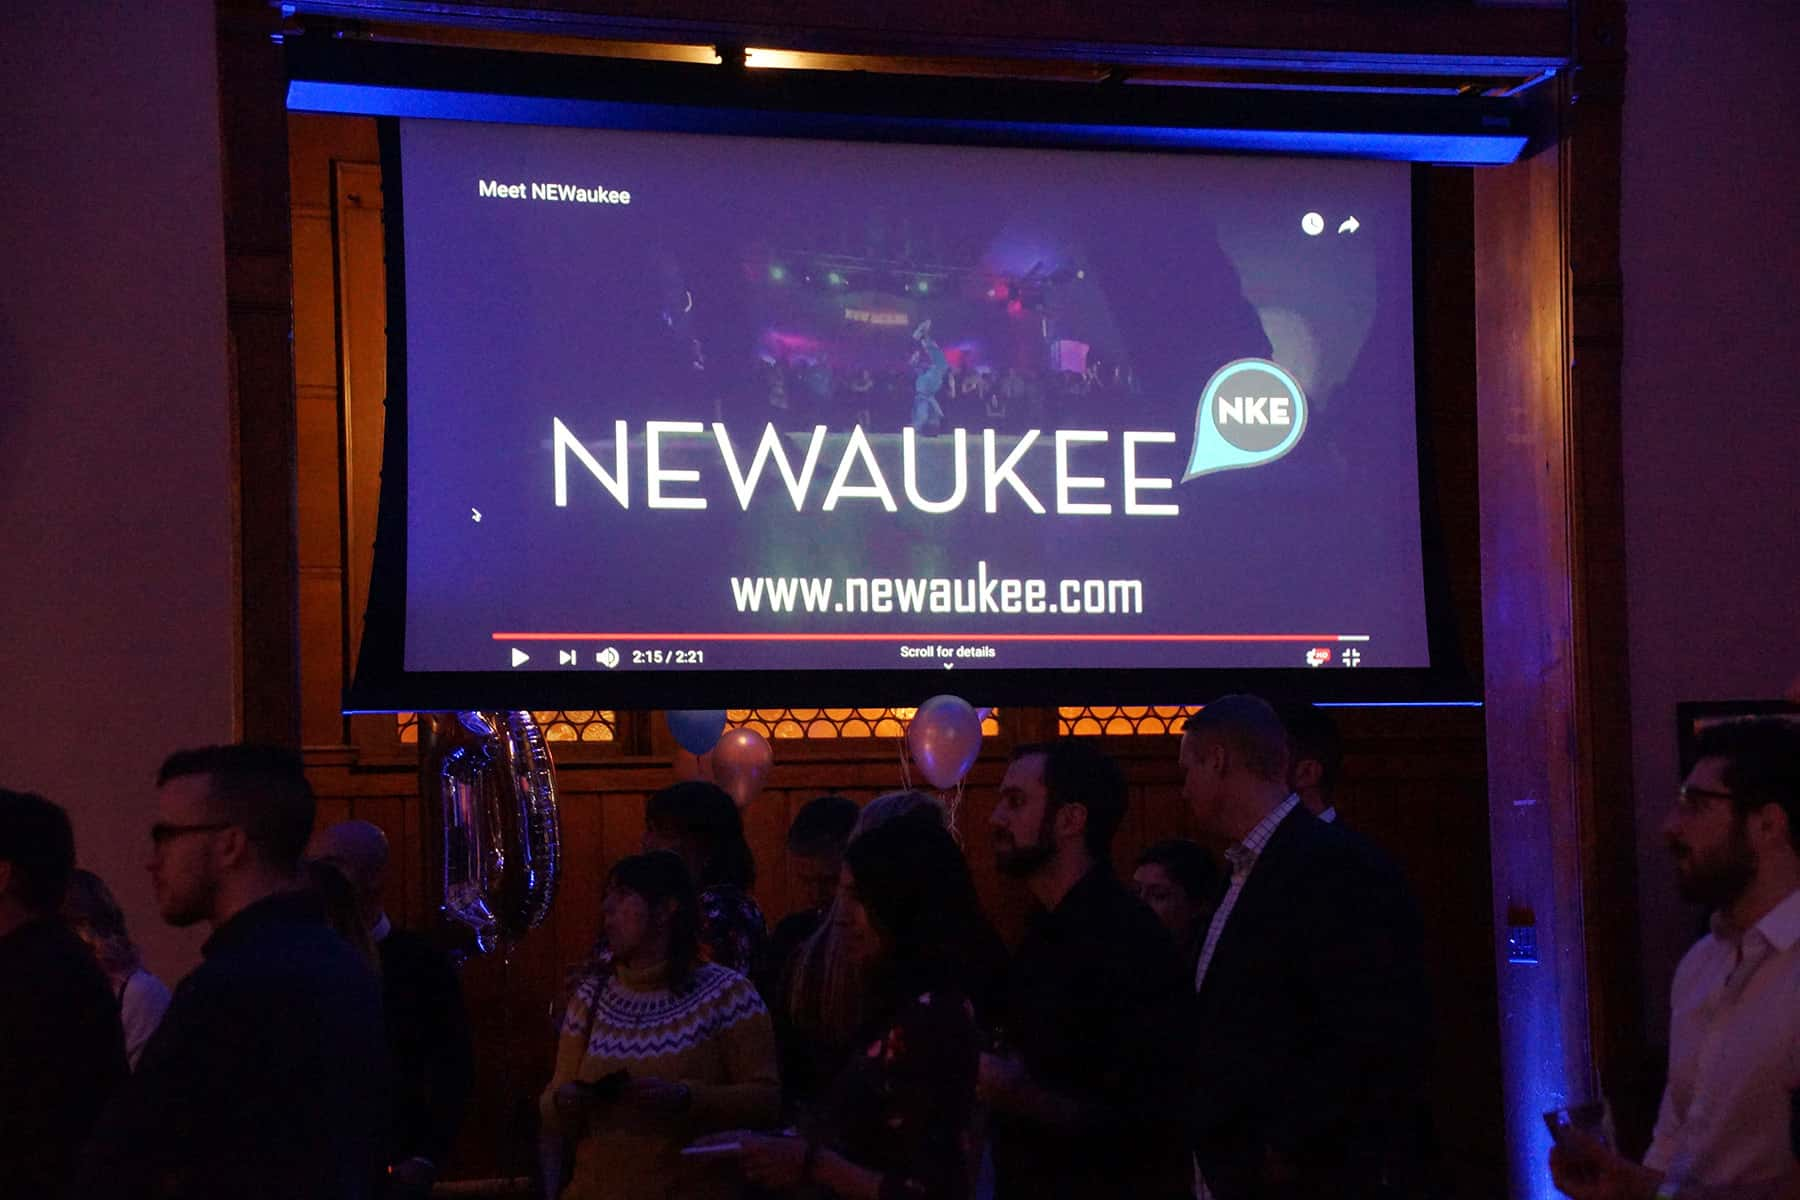 01_020819_newaukee10thparty_205